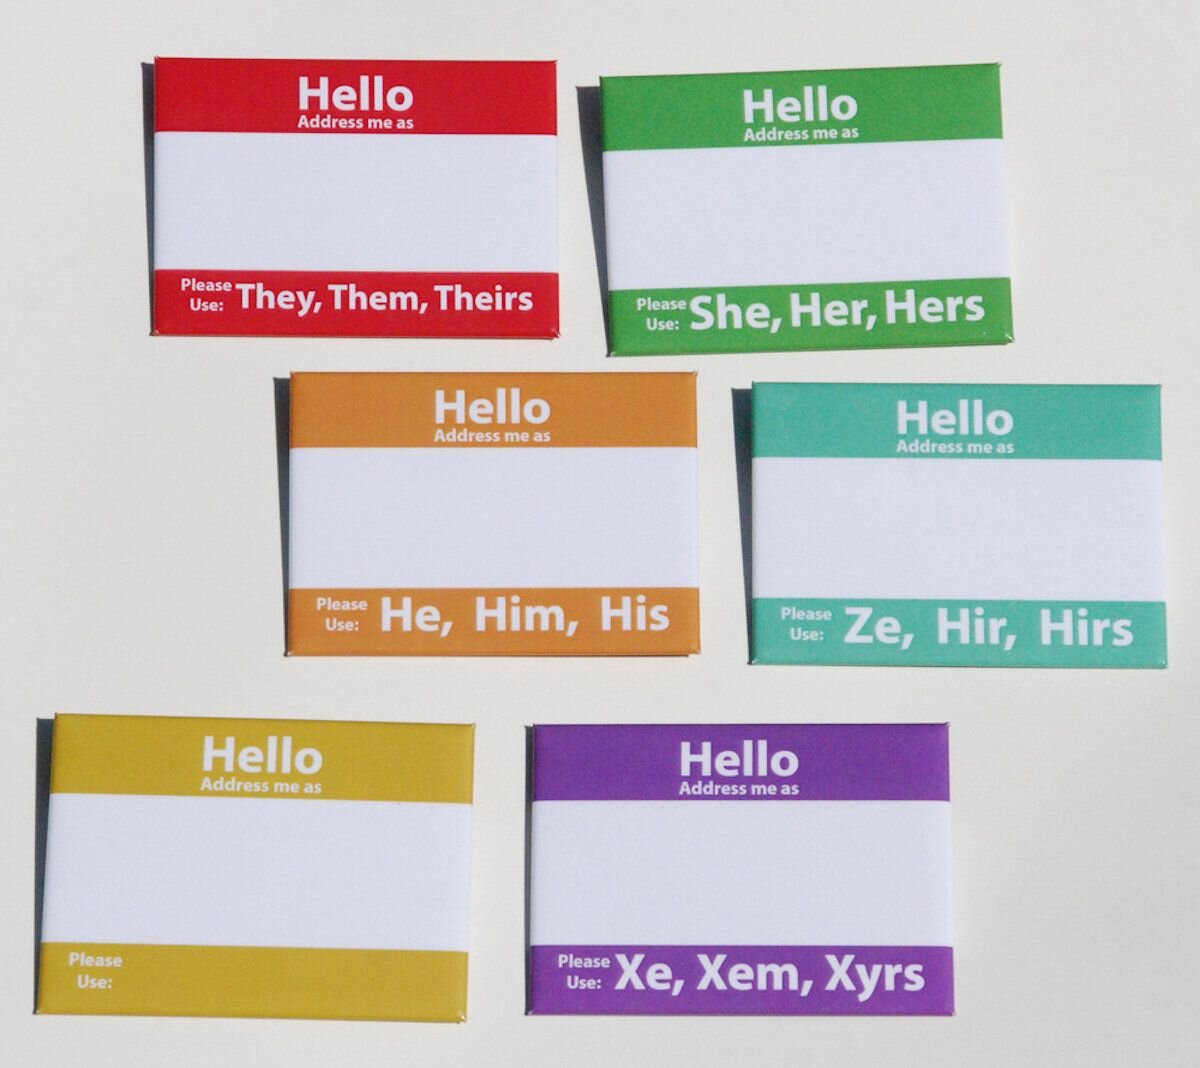 Understanding the preferred pronouns of everyone in the workplace can shift the culture.